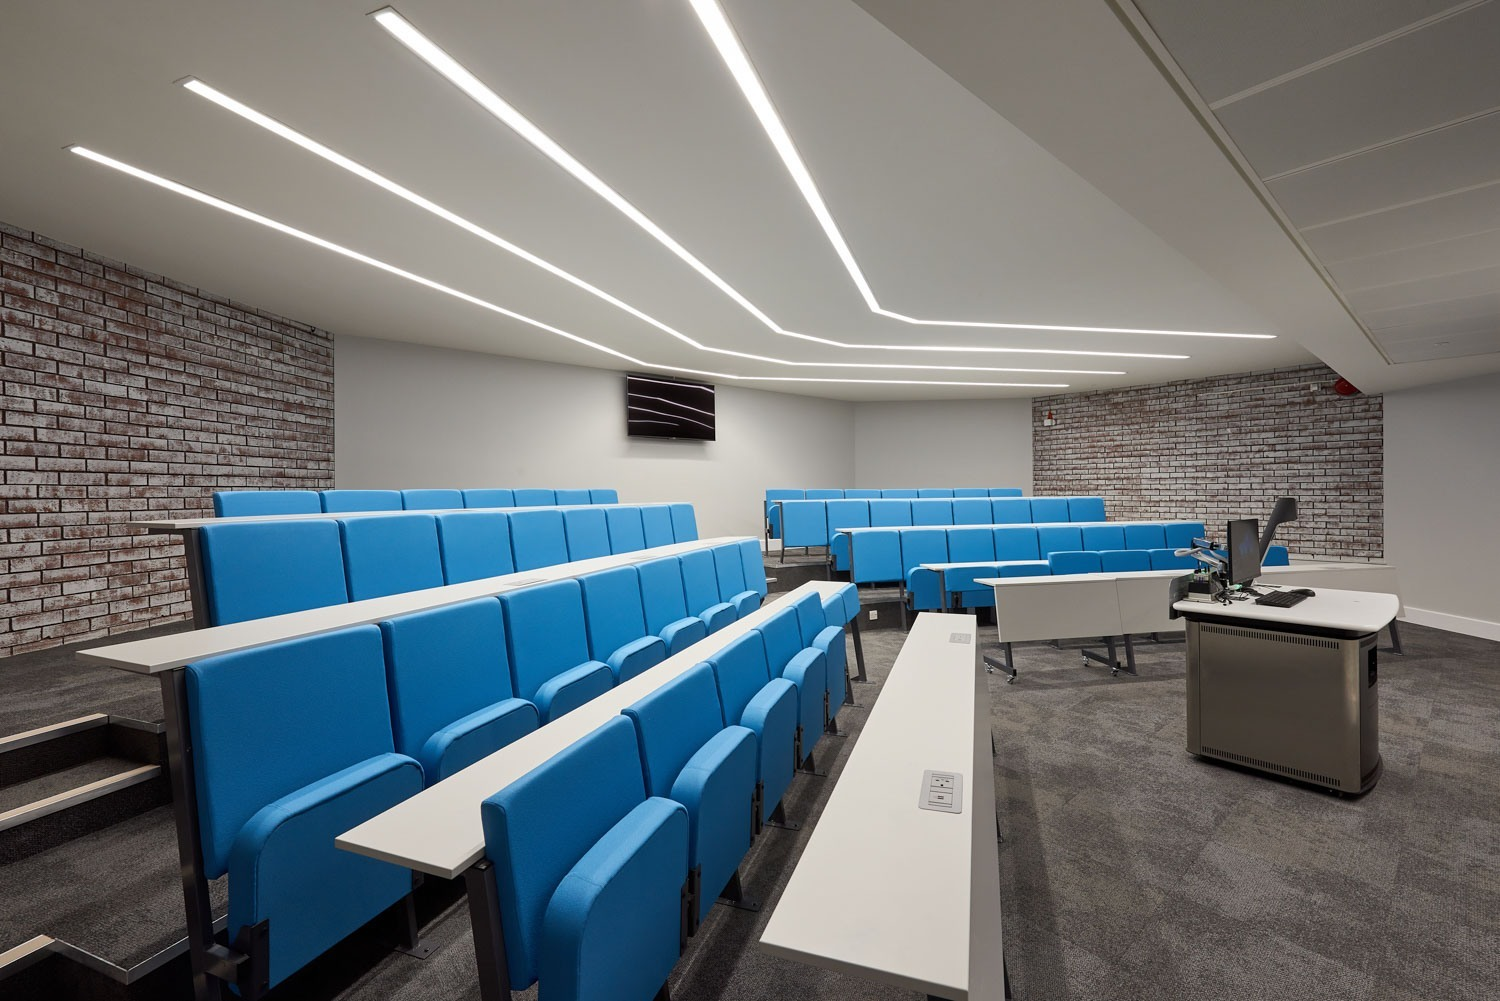 Warwick University fit out